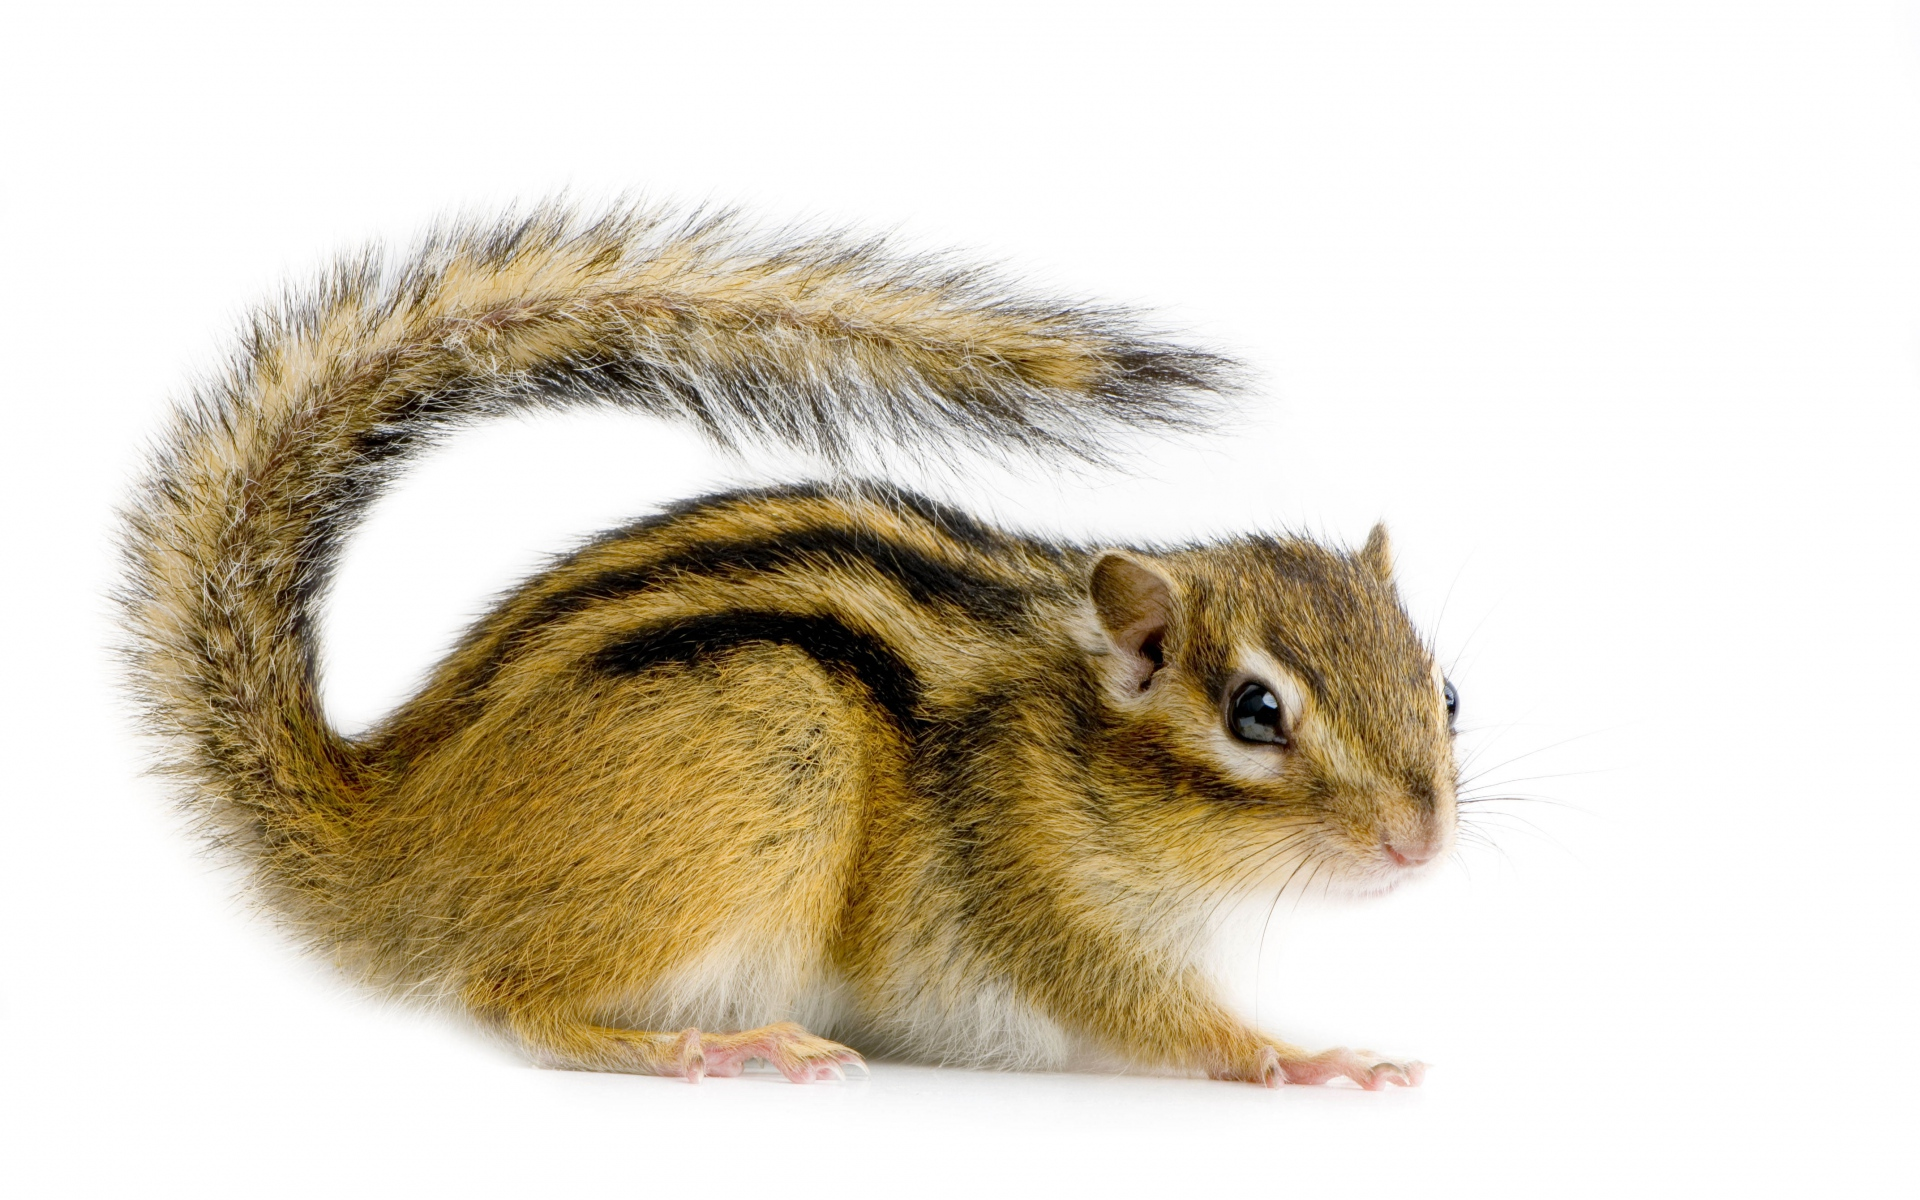 chipmunk_white_background_animal_78134_1920x1200